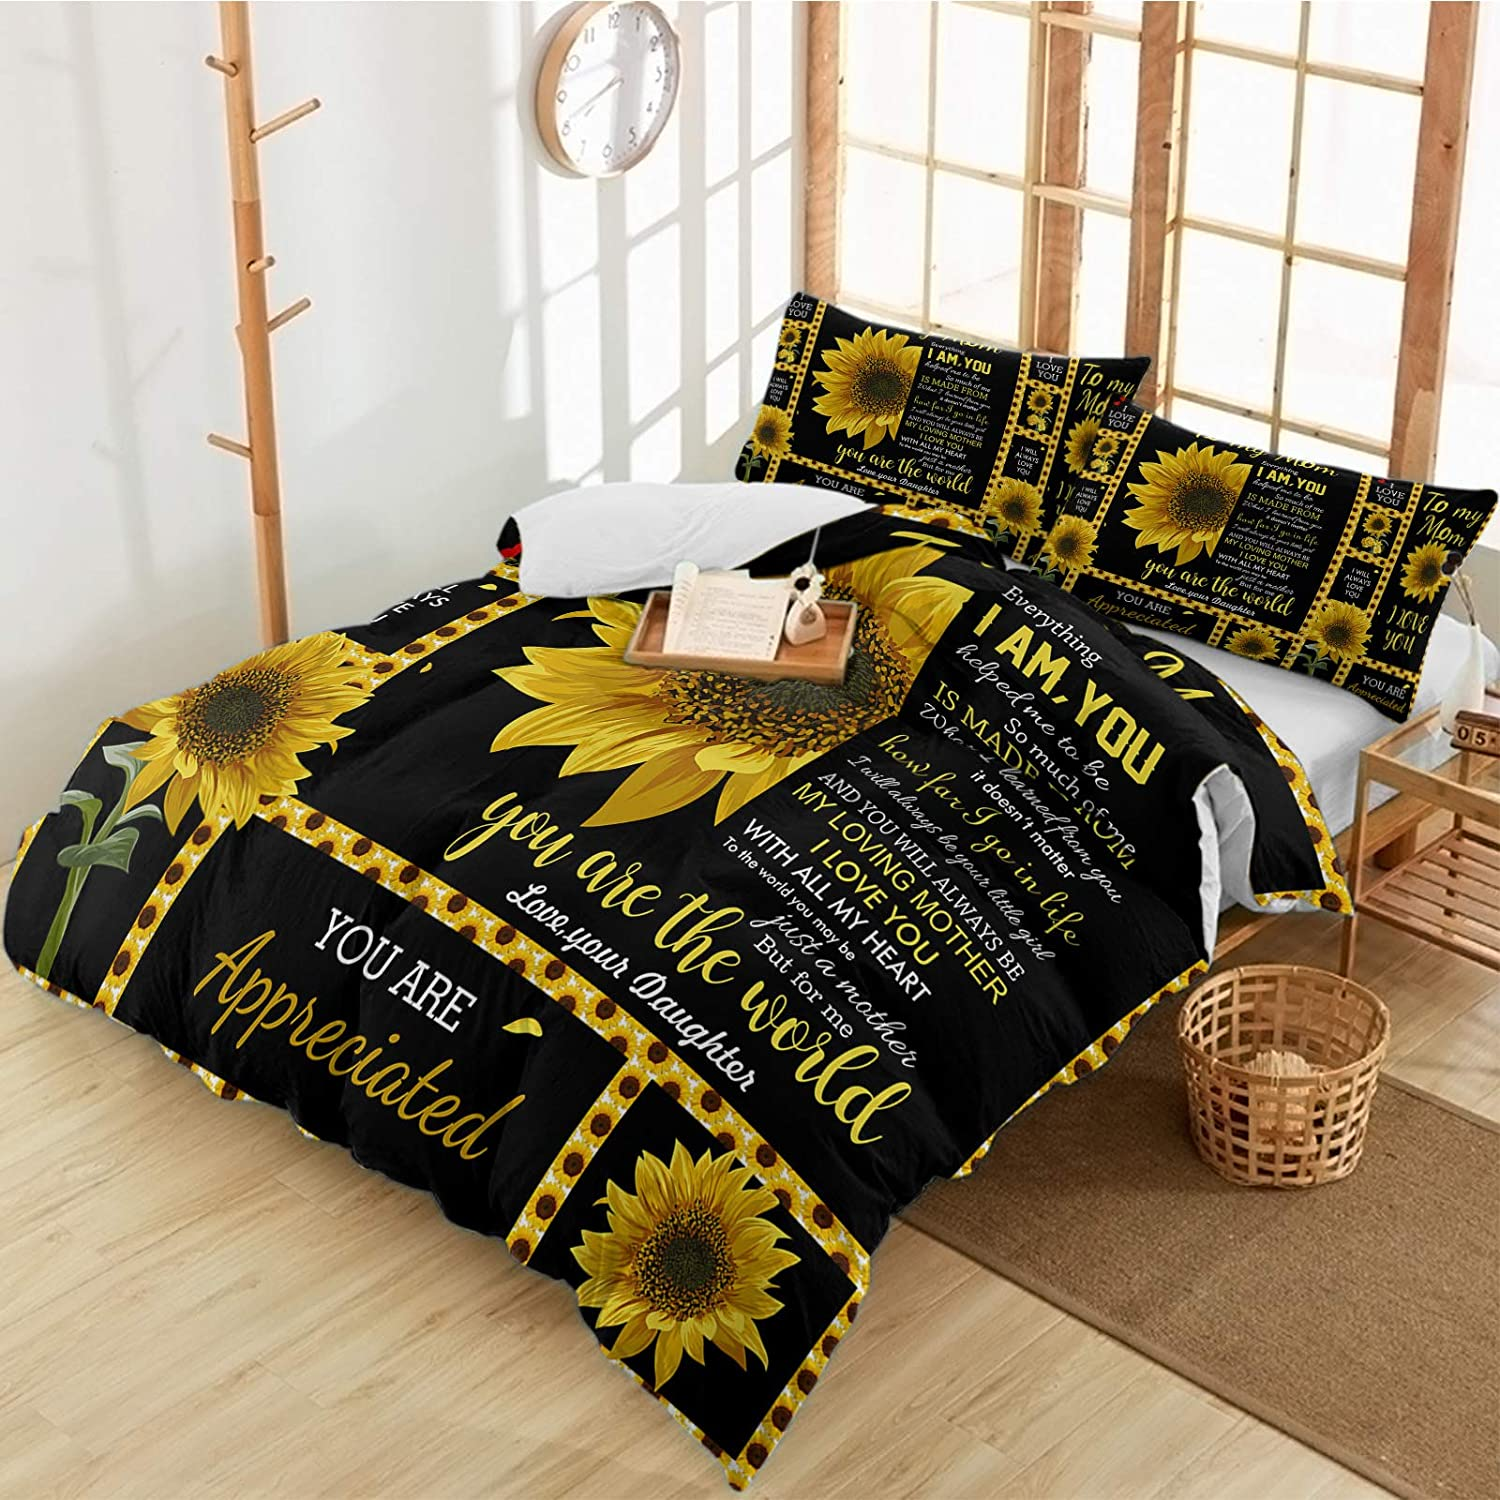 Duvet Cover Set Mother's Day Sunflower Piece S Bedding 3 Quotes El Max 49% OFF Paso Mall